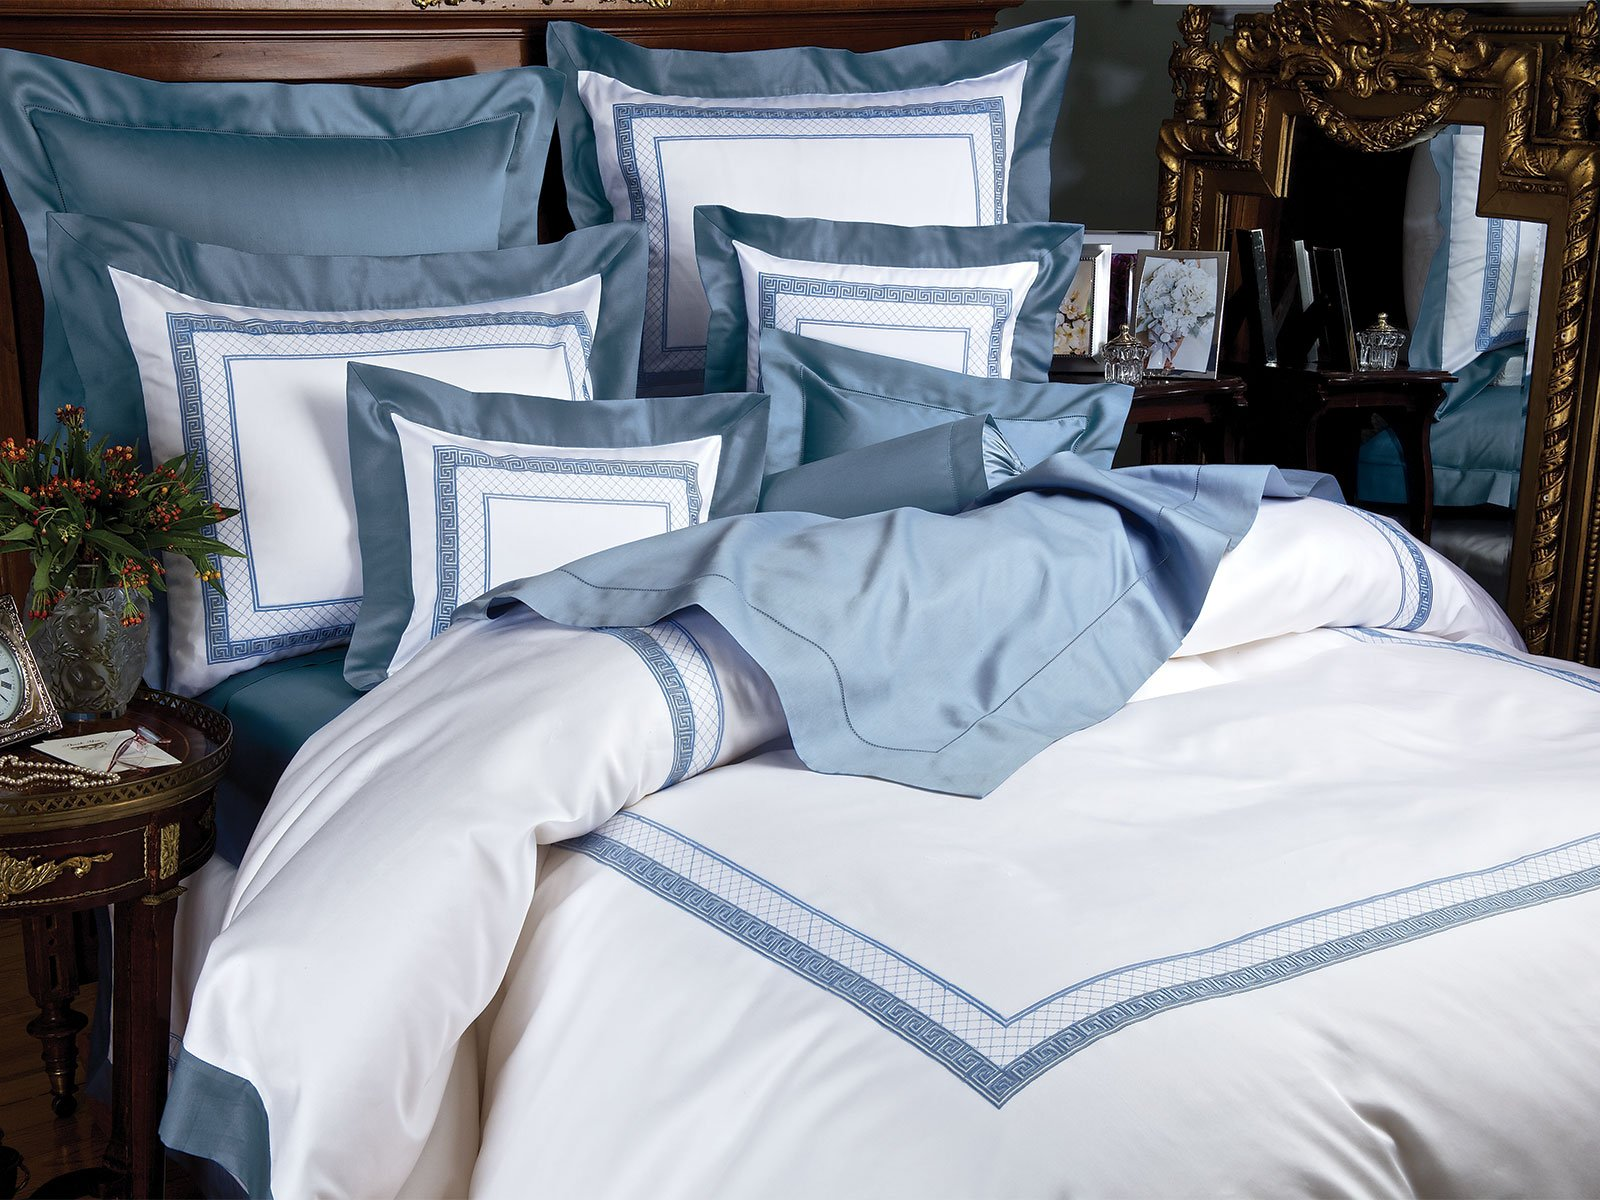 Acropolis Bedding Luxury Bedding Italian Bed Linens